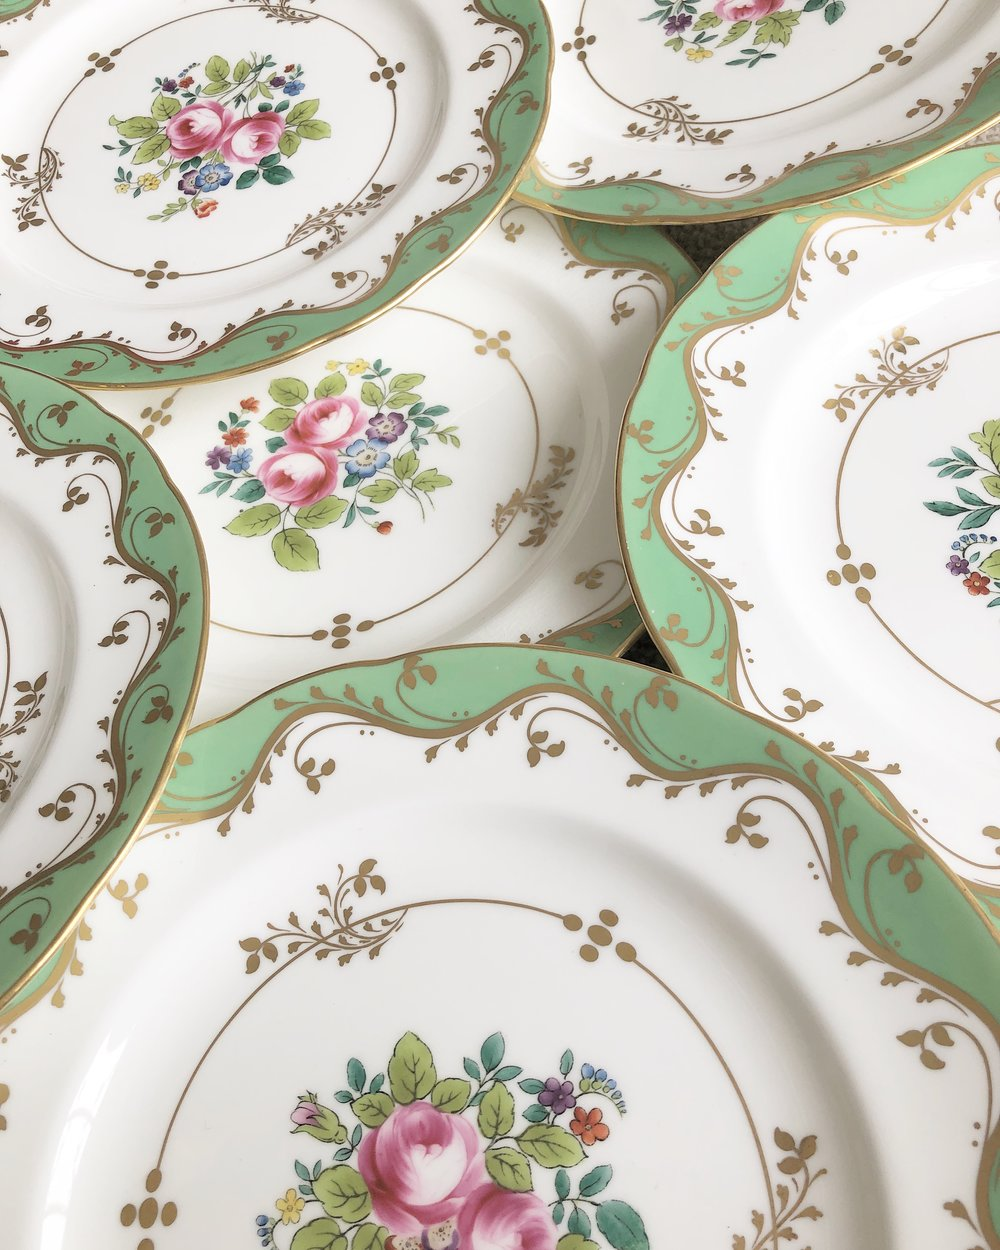 A set of six hand-painted antique Minton plates